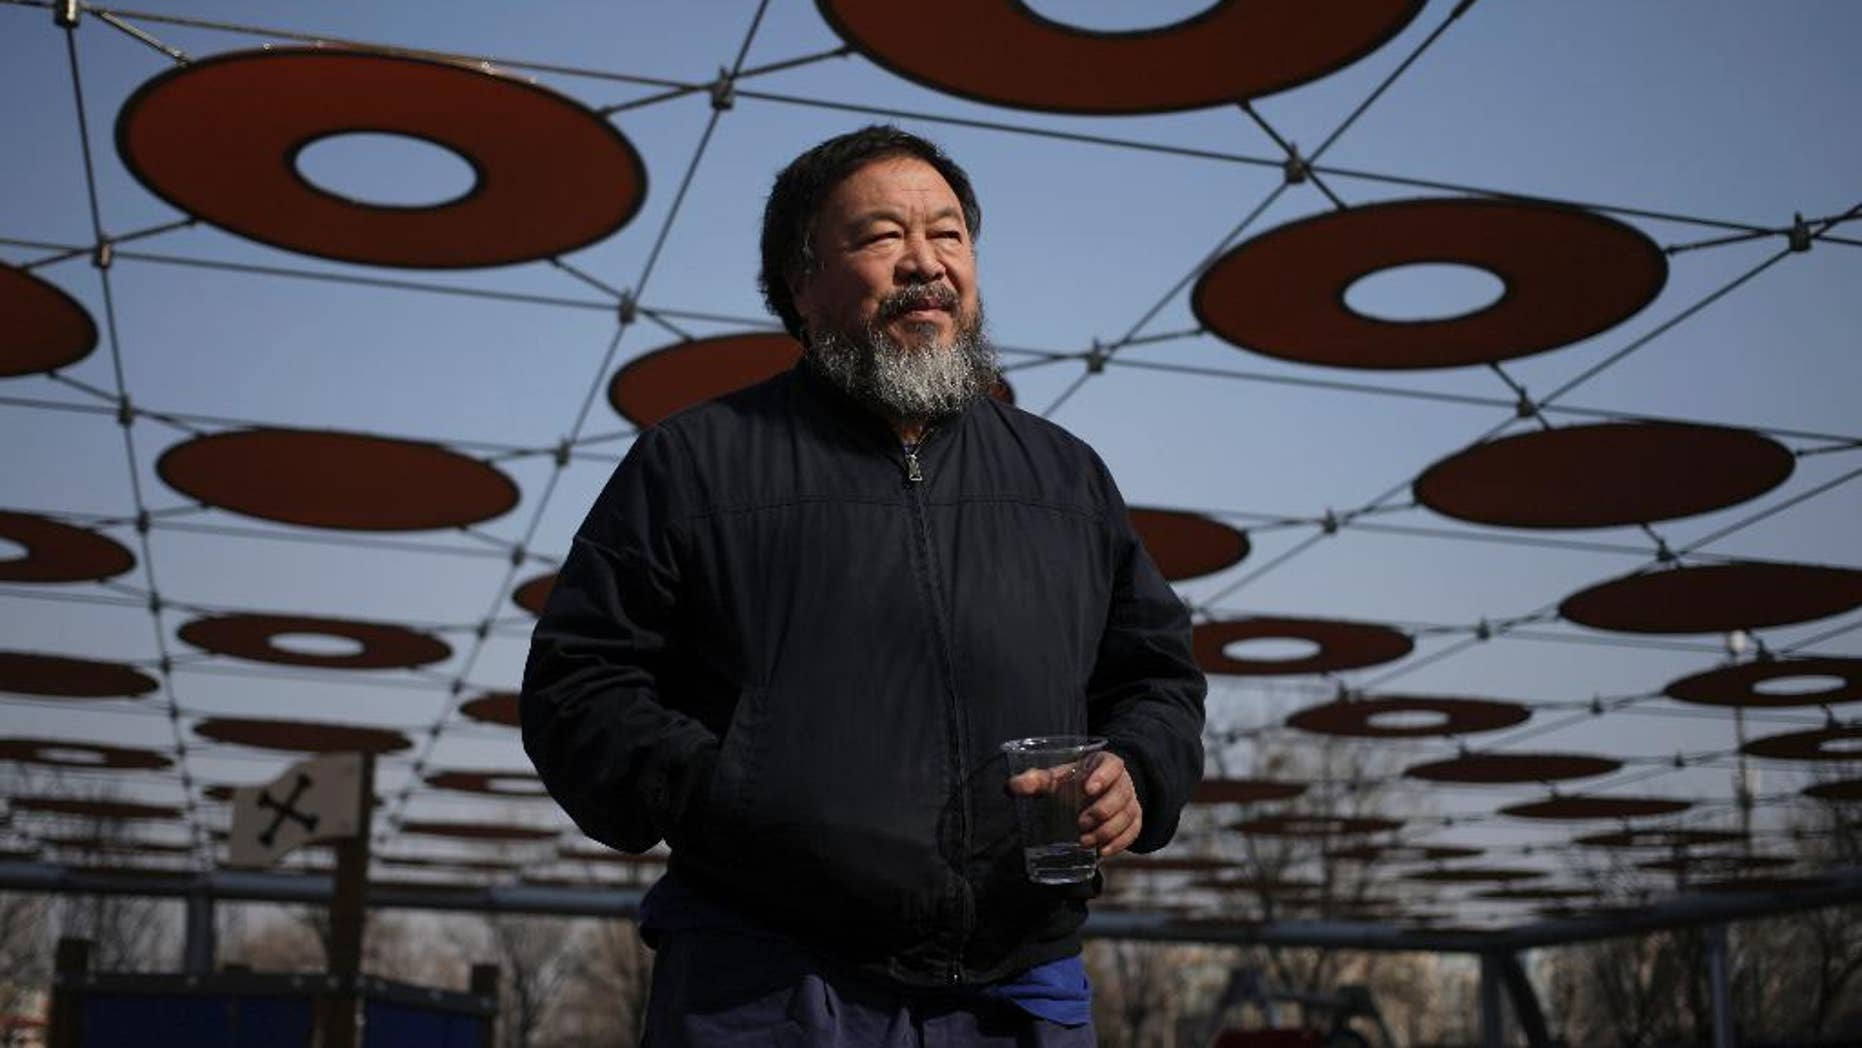 """FILE - In this March 24, 2015 file photo, Chinese dissident artist Ai Weiwei walks near a playground outside a shopping mall in Beijing. Ai has his passport back four years after it was confiscated by authorities. Ai on Wednesday, July 22, 2015, posted a photo of himself on Instagram holding a Chinese passport with the caption, """"Today, I got my passport."""" (AP Photo/Andy Wong, File)"""